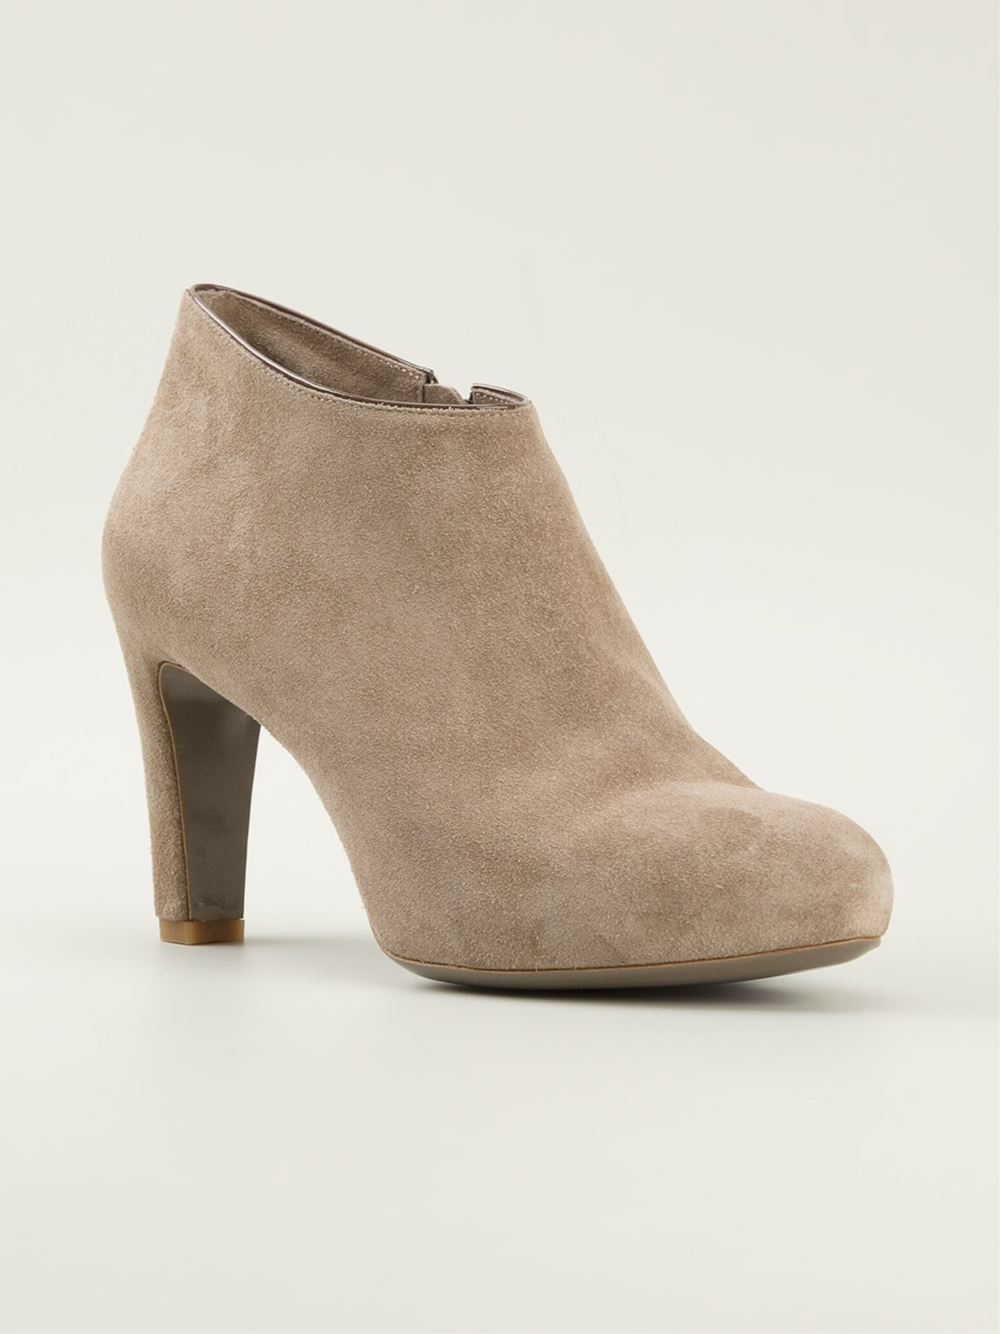 Roberto del carlo Classic Ankle Boots in Natural | Lyst